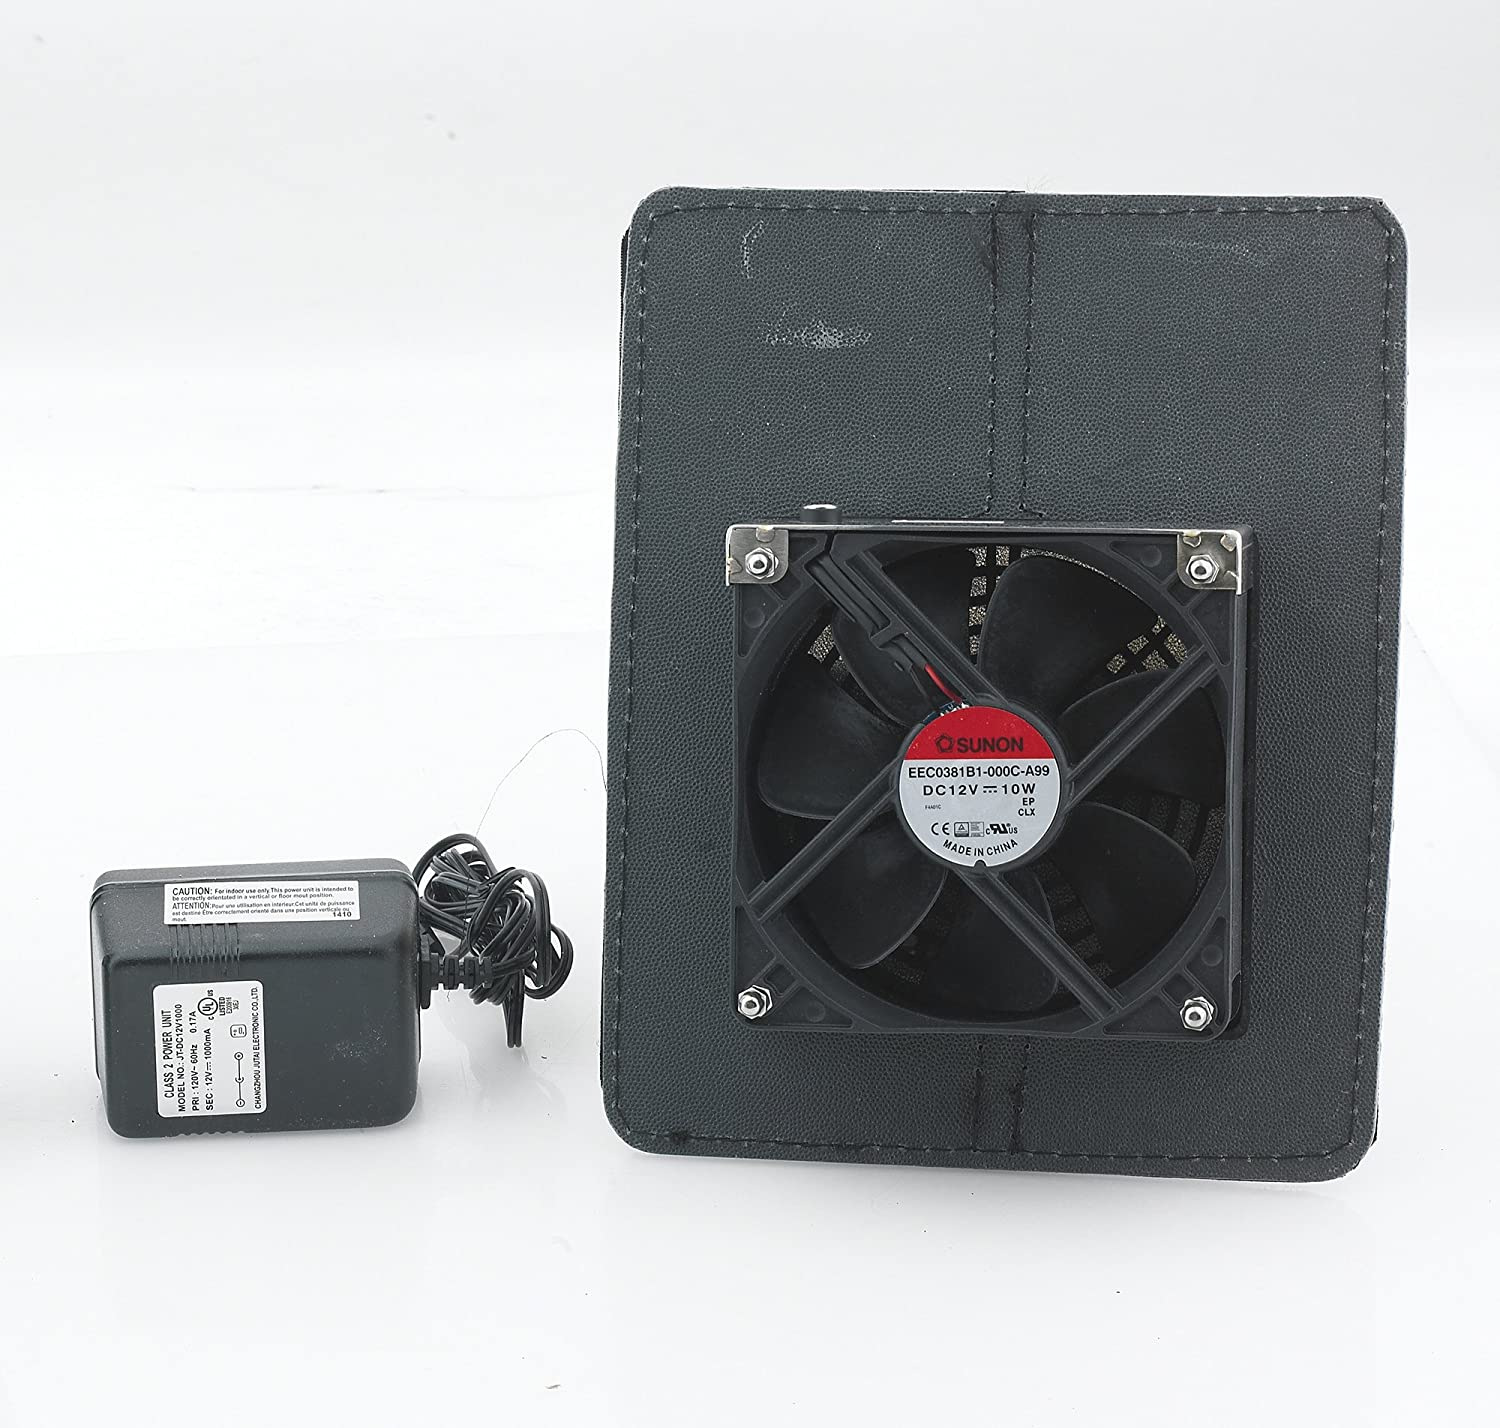 CarCapsule CC14F 14 Indoor Premium CarCapsule with Improved HD Fan and Improved Charcoal Filter